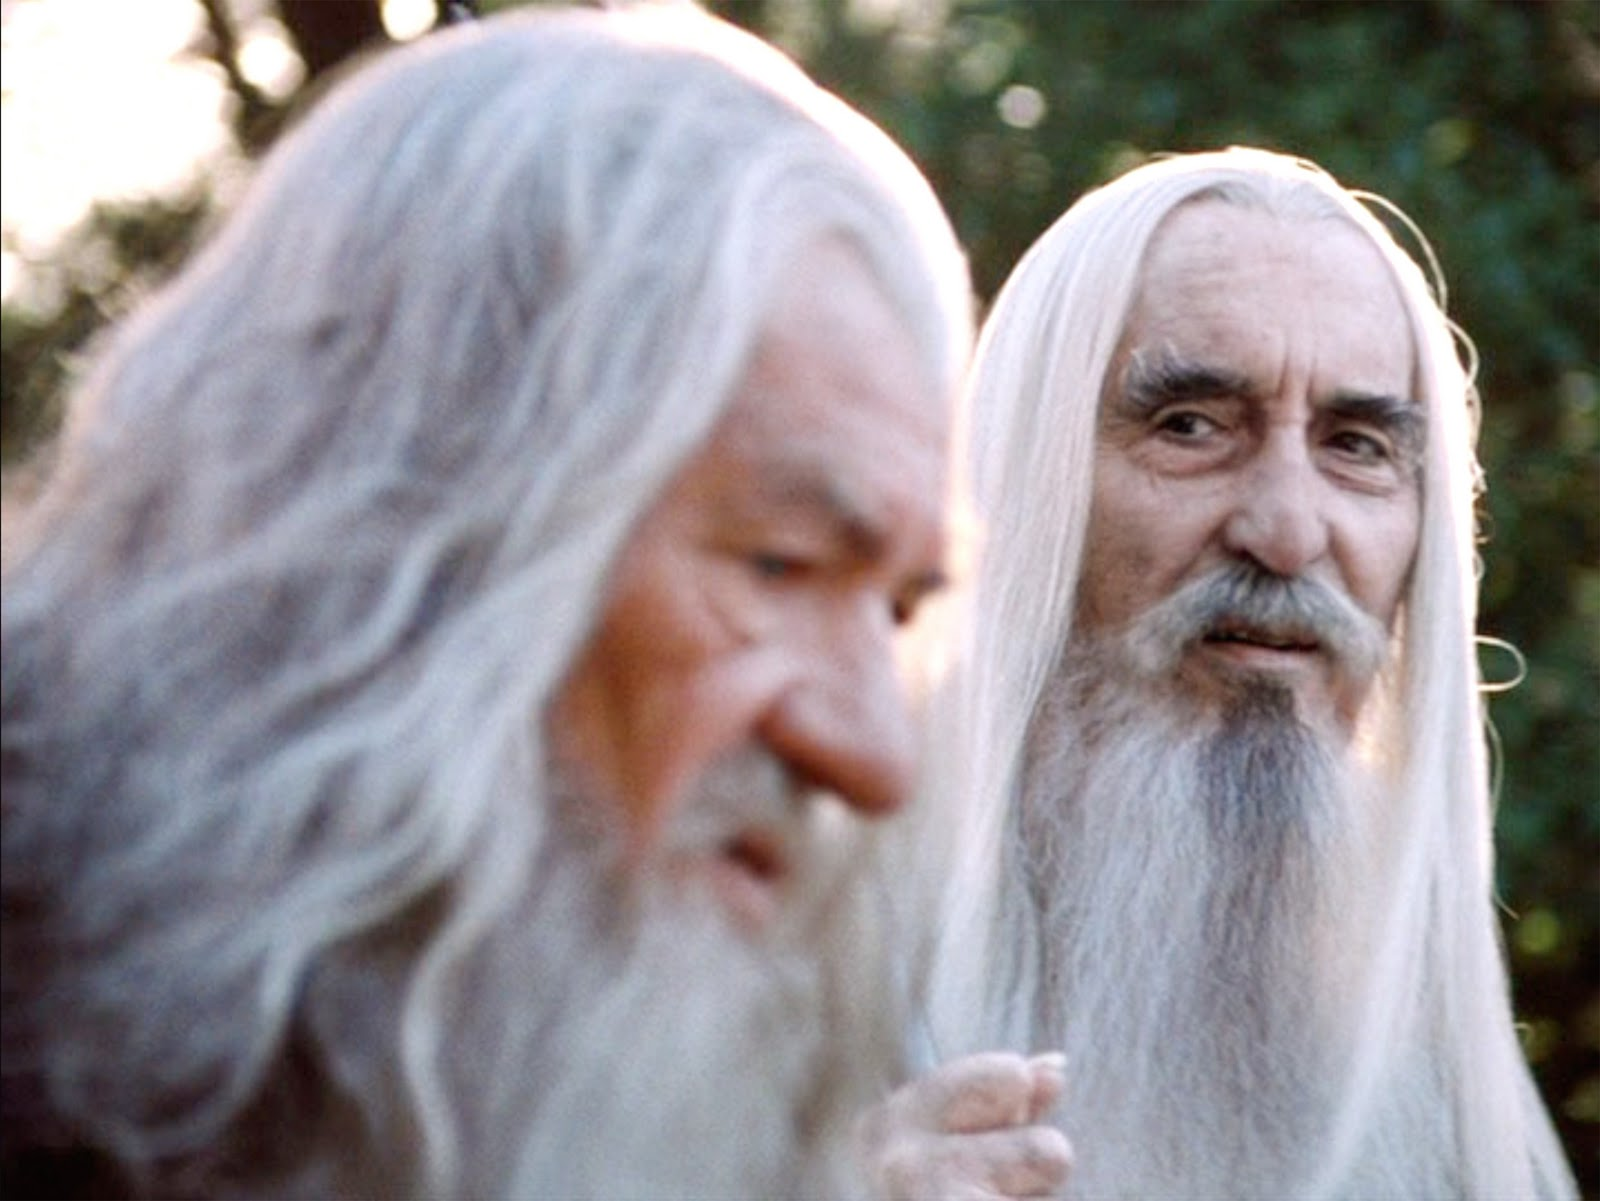 2. The Lord Of The Rings Franchise 2